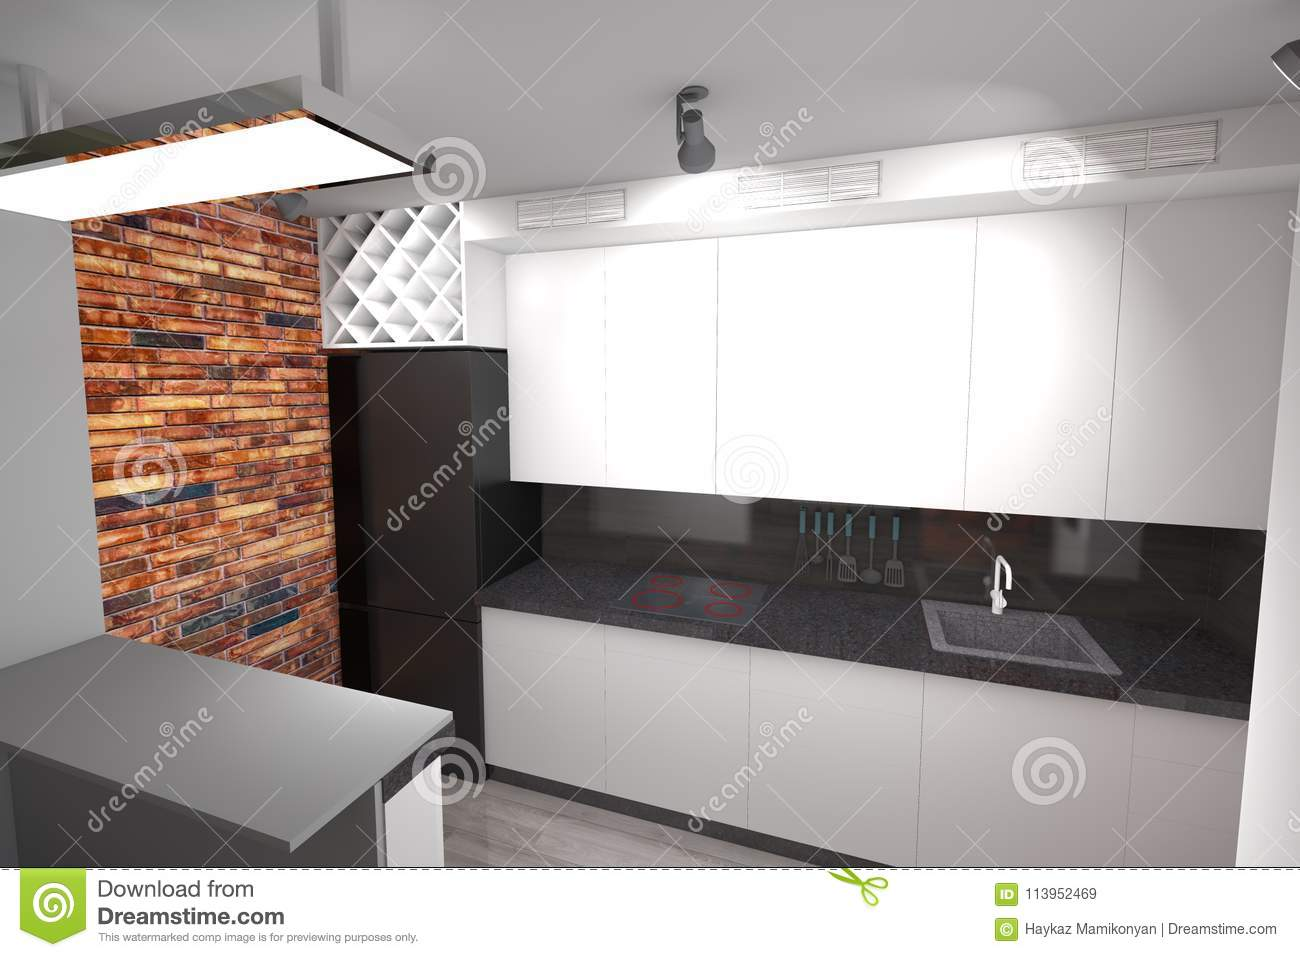 Kitchen Design 3d Model 3d Kitchen Design Modern Stock Illustration Illustration Of Draw